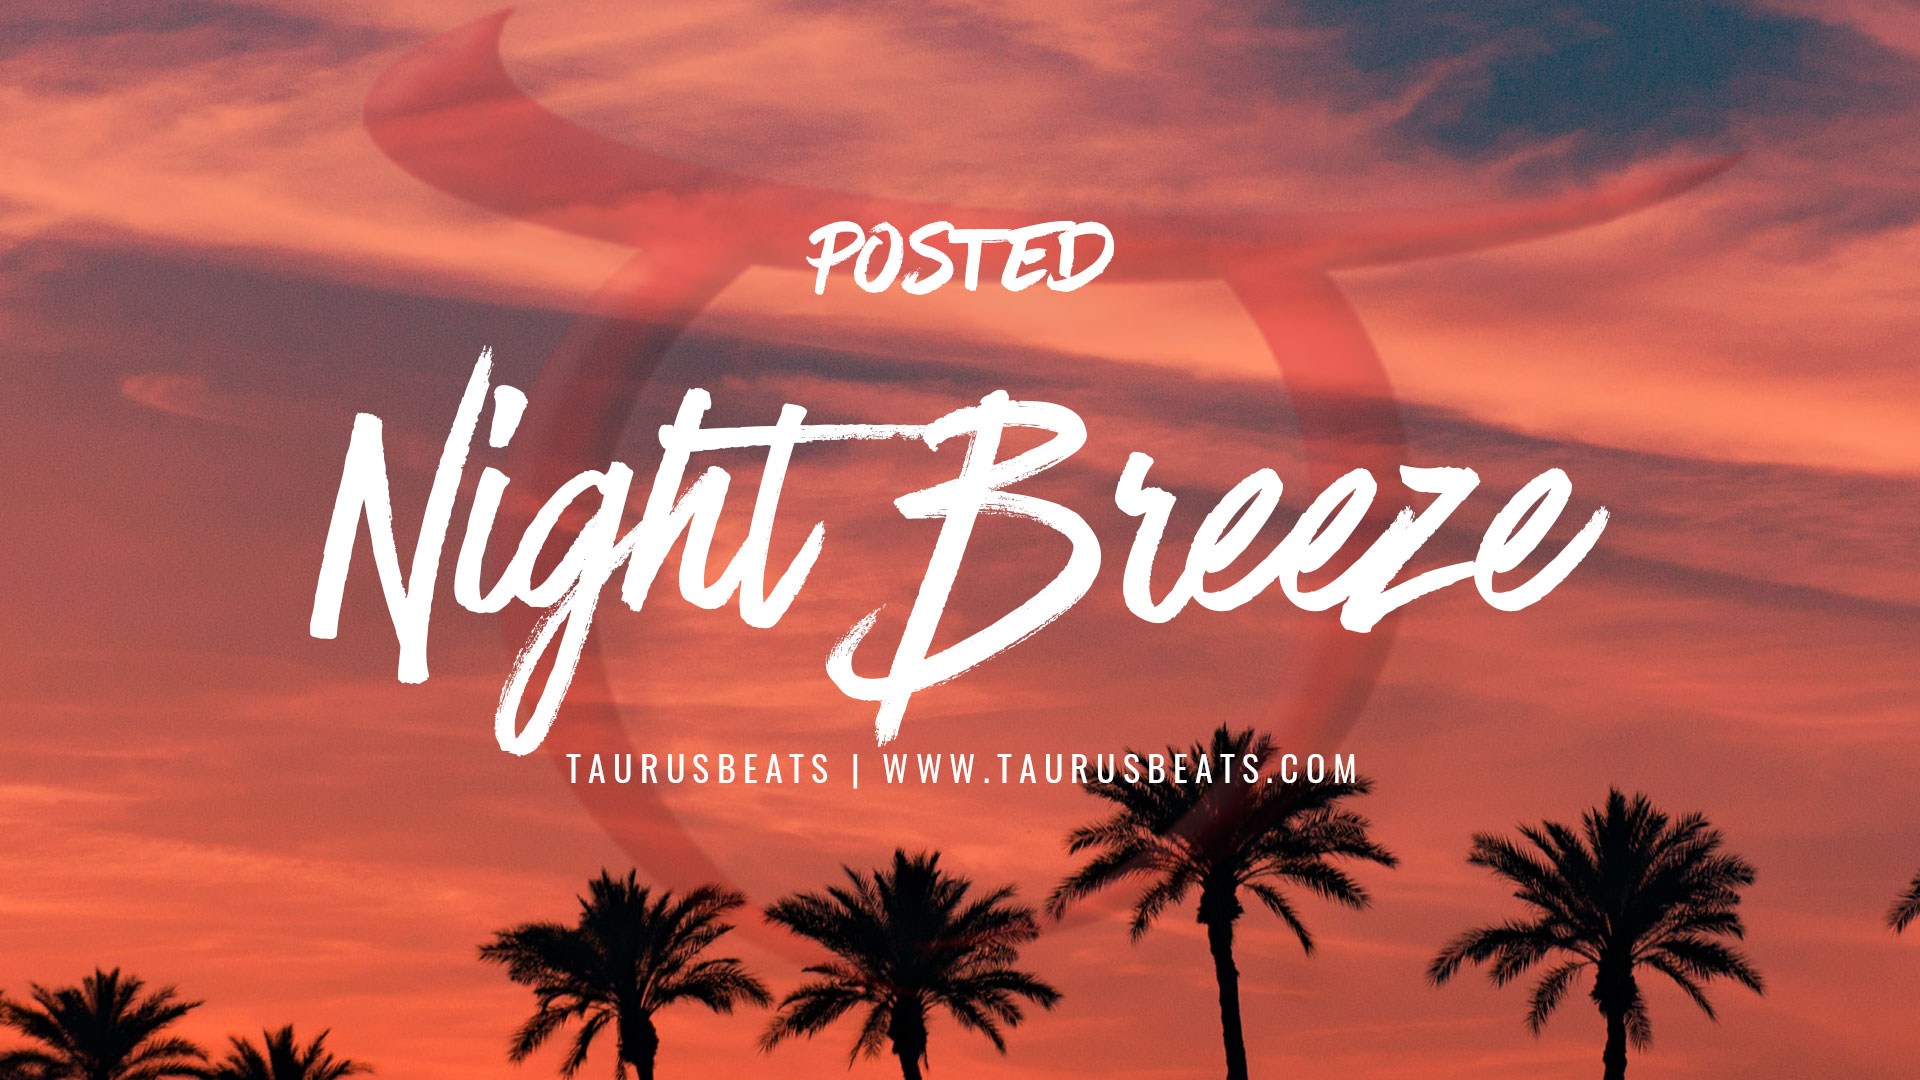 image for Night Breeze